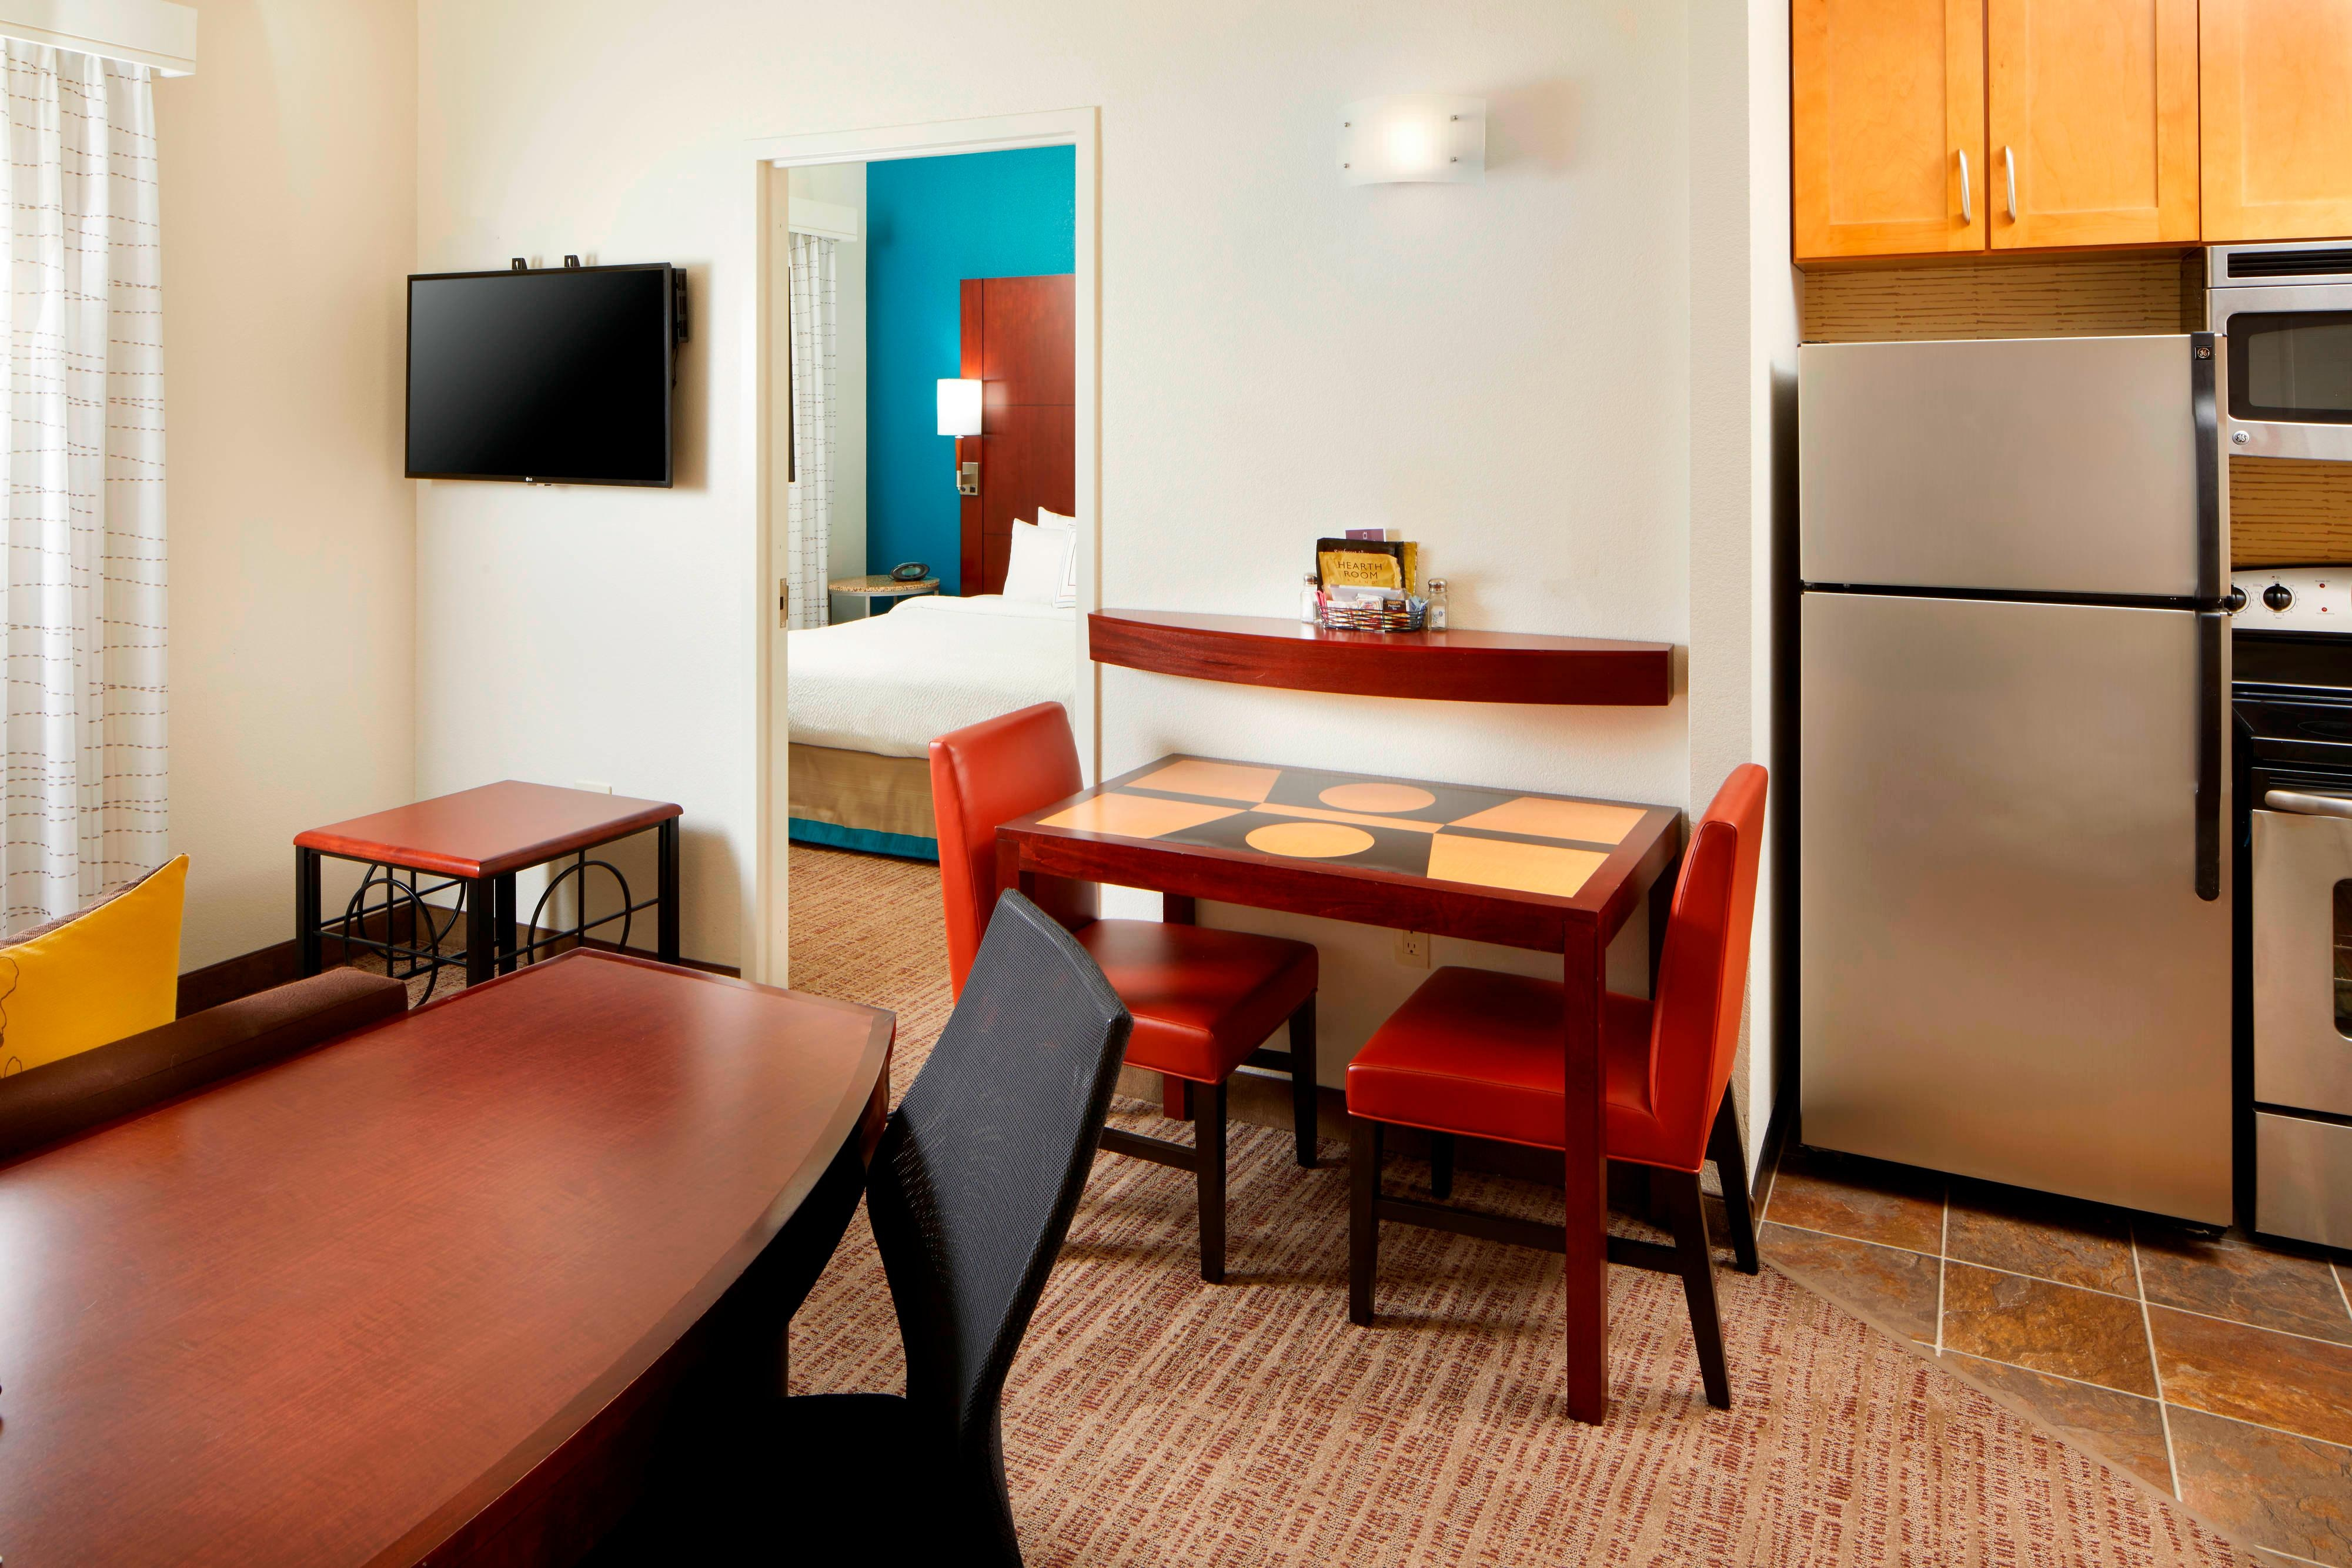 San antonio hotel near six flags residence inn by marriott hotel for 2 bedroom hotels in san antonio